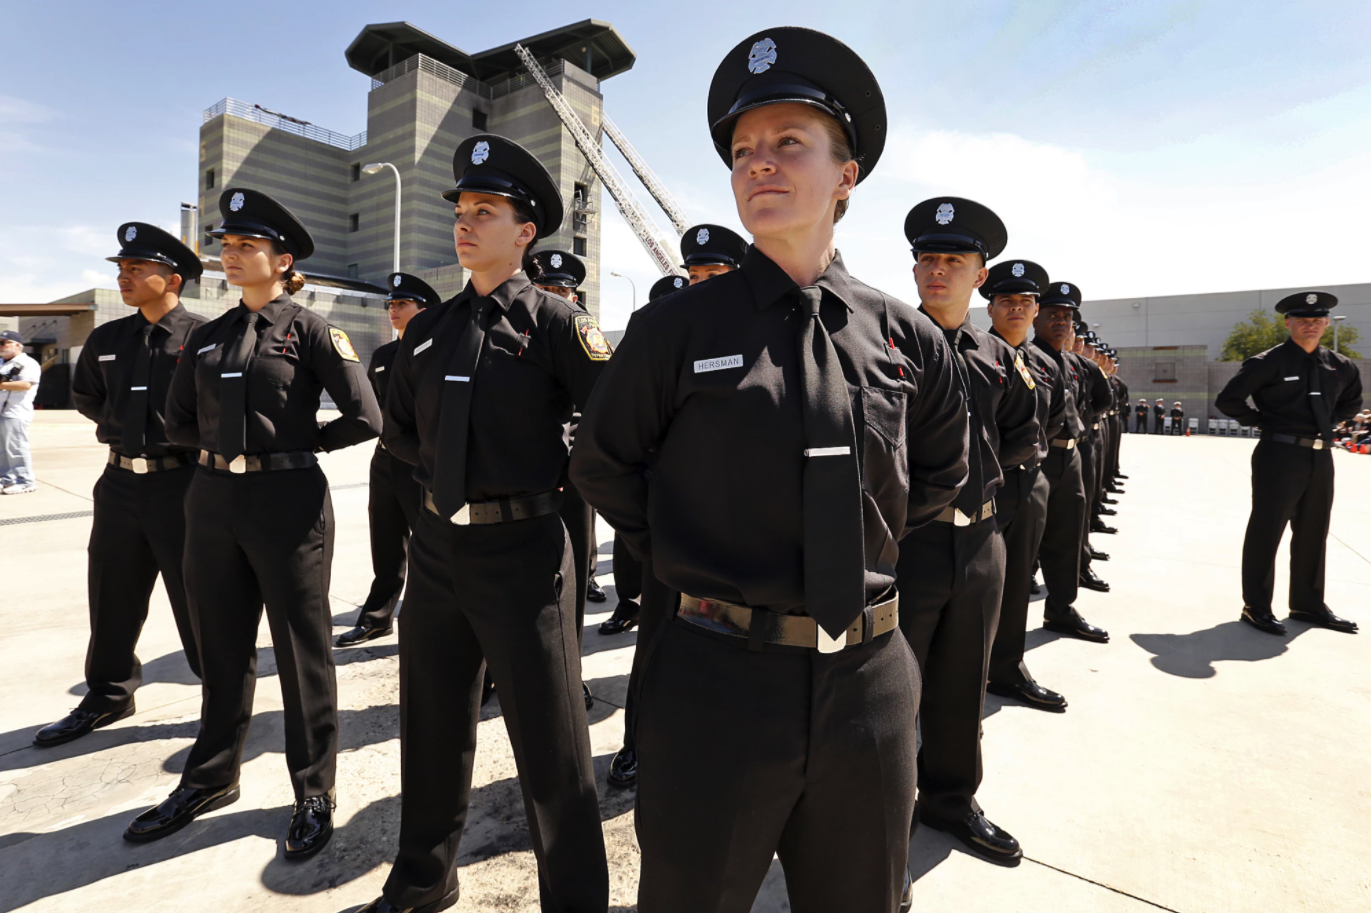 Katie Becker, center, at her April 2016 graduation ceremony from the Los Angeles Fire Department's Valley Recruit Training Academy. Becker has since left the department.(Al Seib / Los Angeles Times)